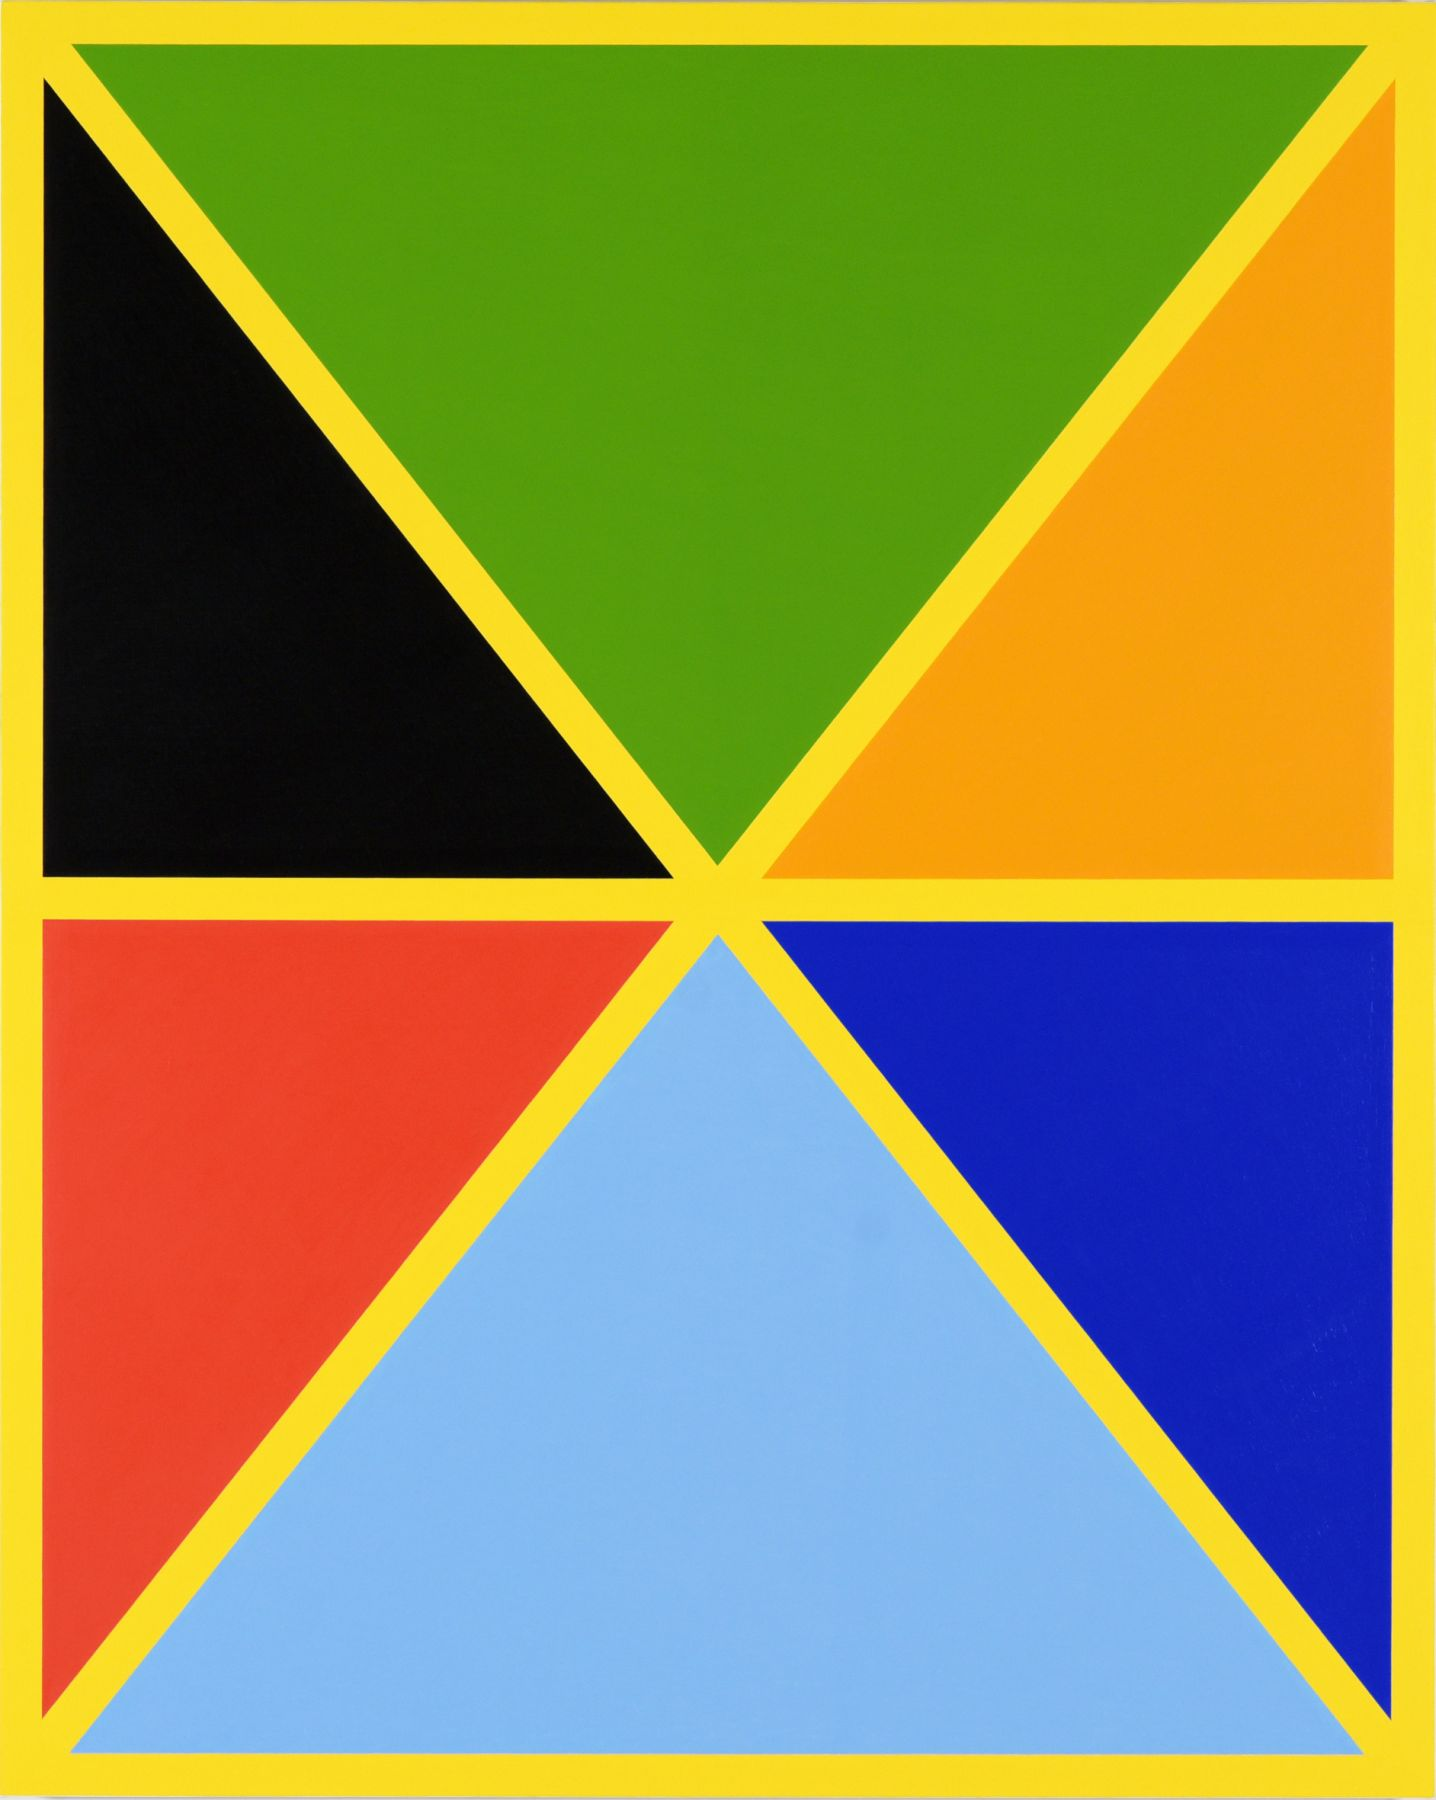 Cary Smith, Diagonals (with 7 colors) #1, 2017